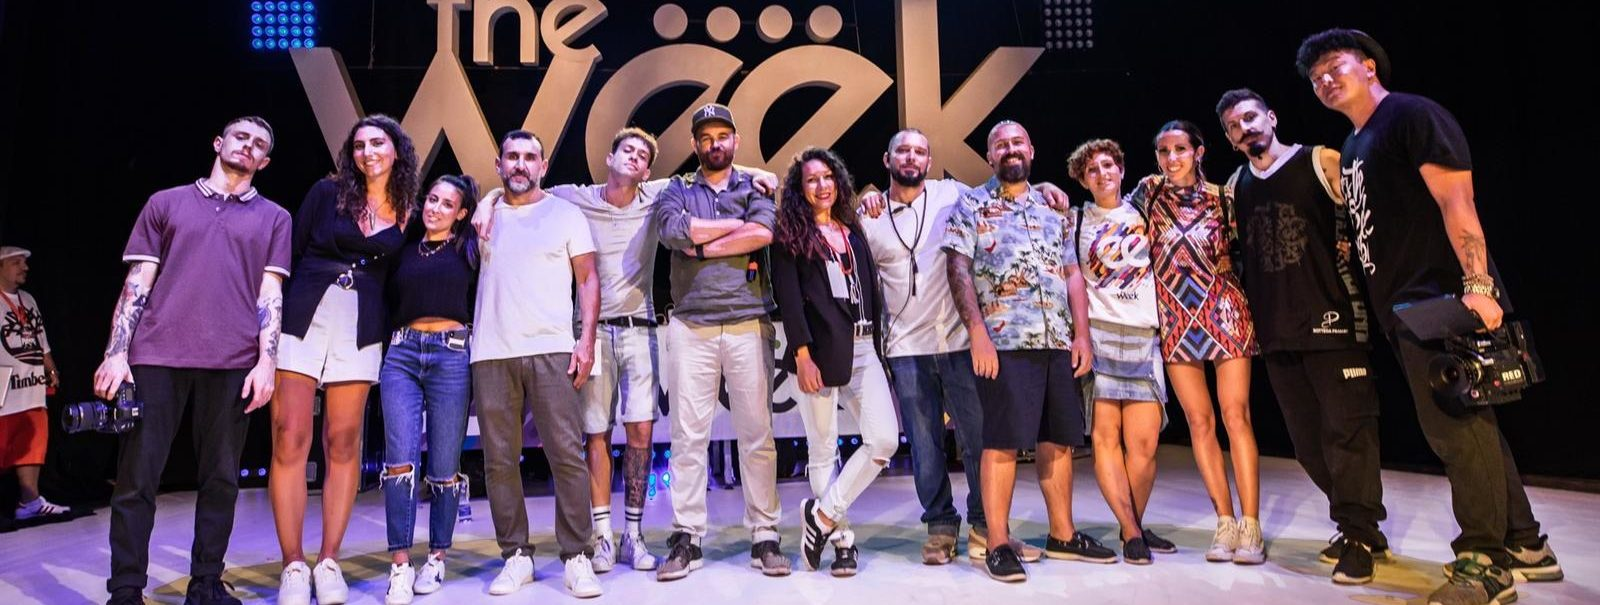 The Week 2019 Street Dance Summer Camp Cesenatico Italy Workshop Stage Hip Hop Festival